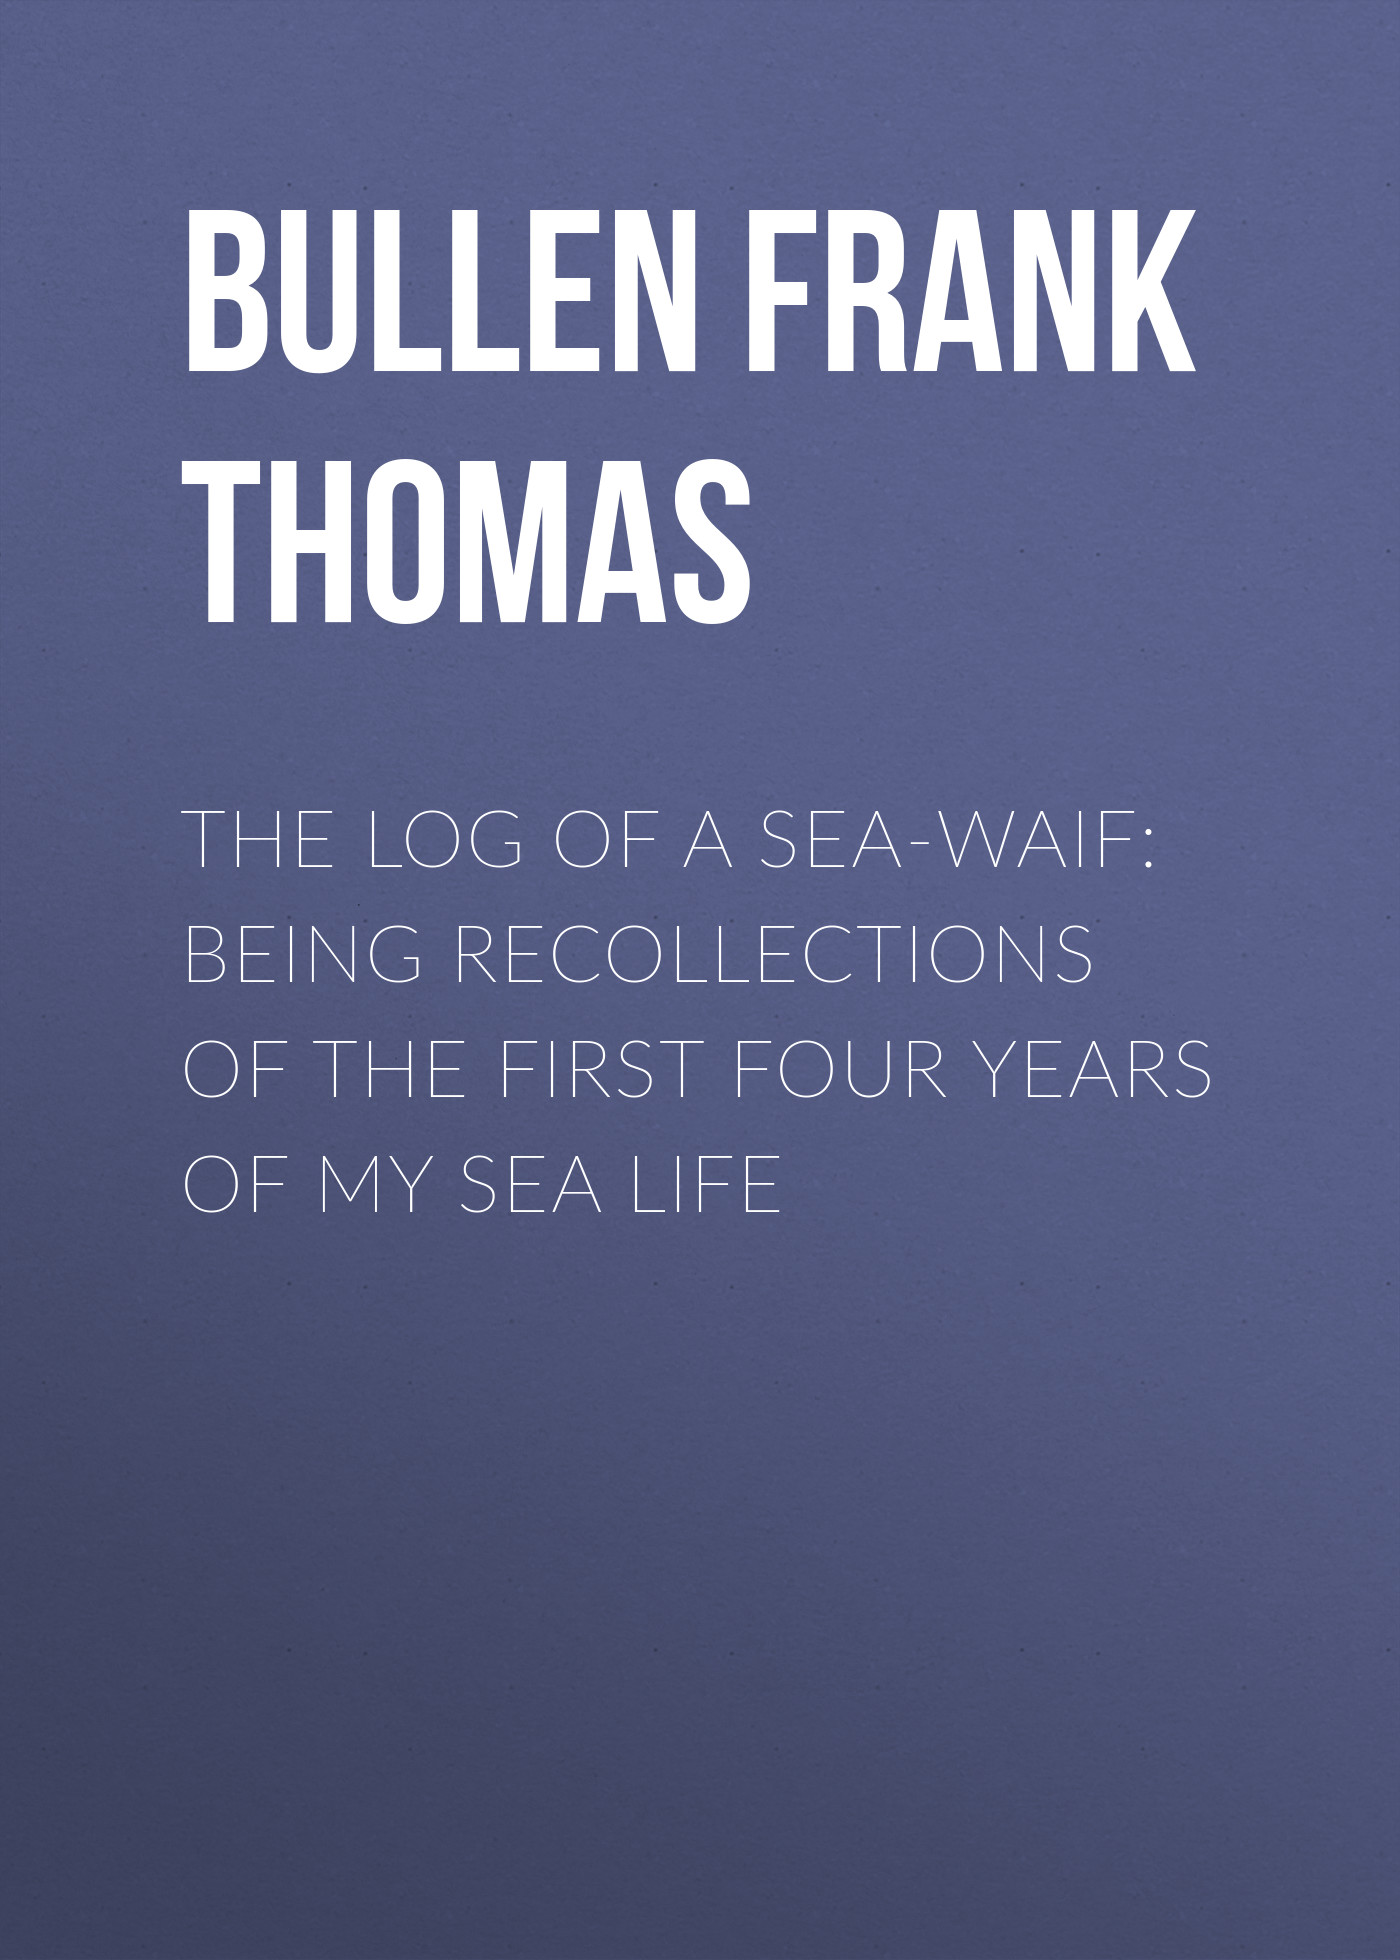 Bullen Frank Thomas The Log of a Sea-Waif: Being Recollections of the First Four Years of My Sea Life salish sea the